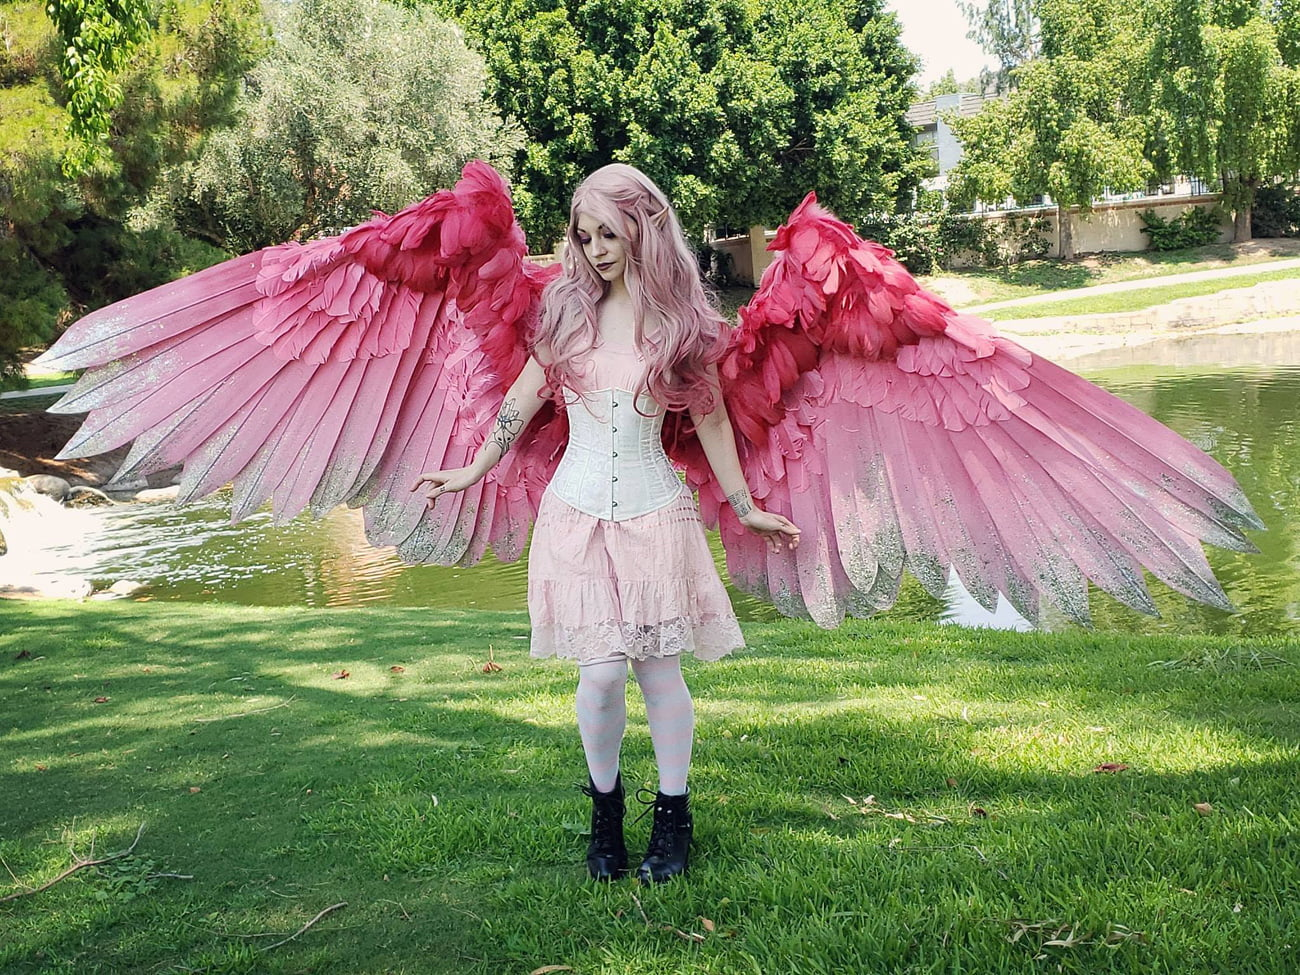 Alexis Noriega's Giant Feathered Wings